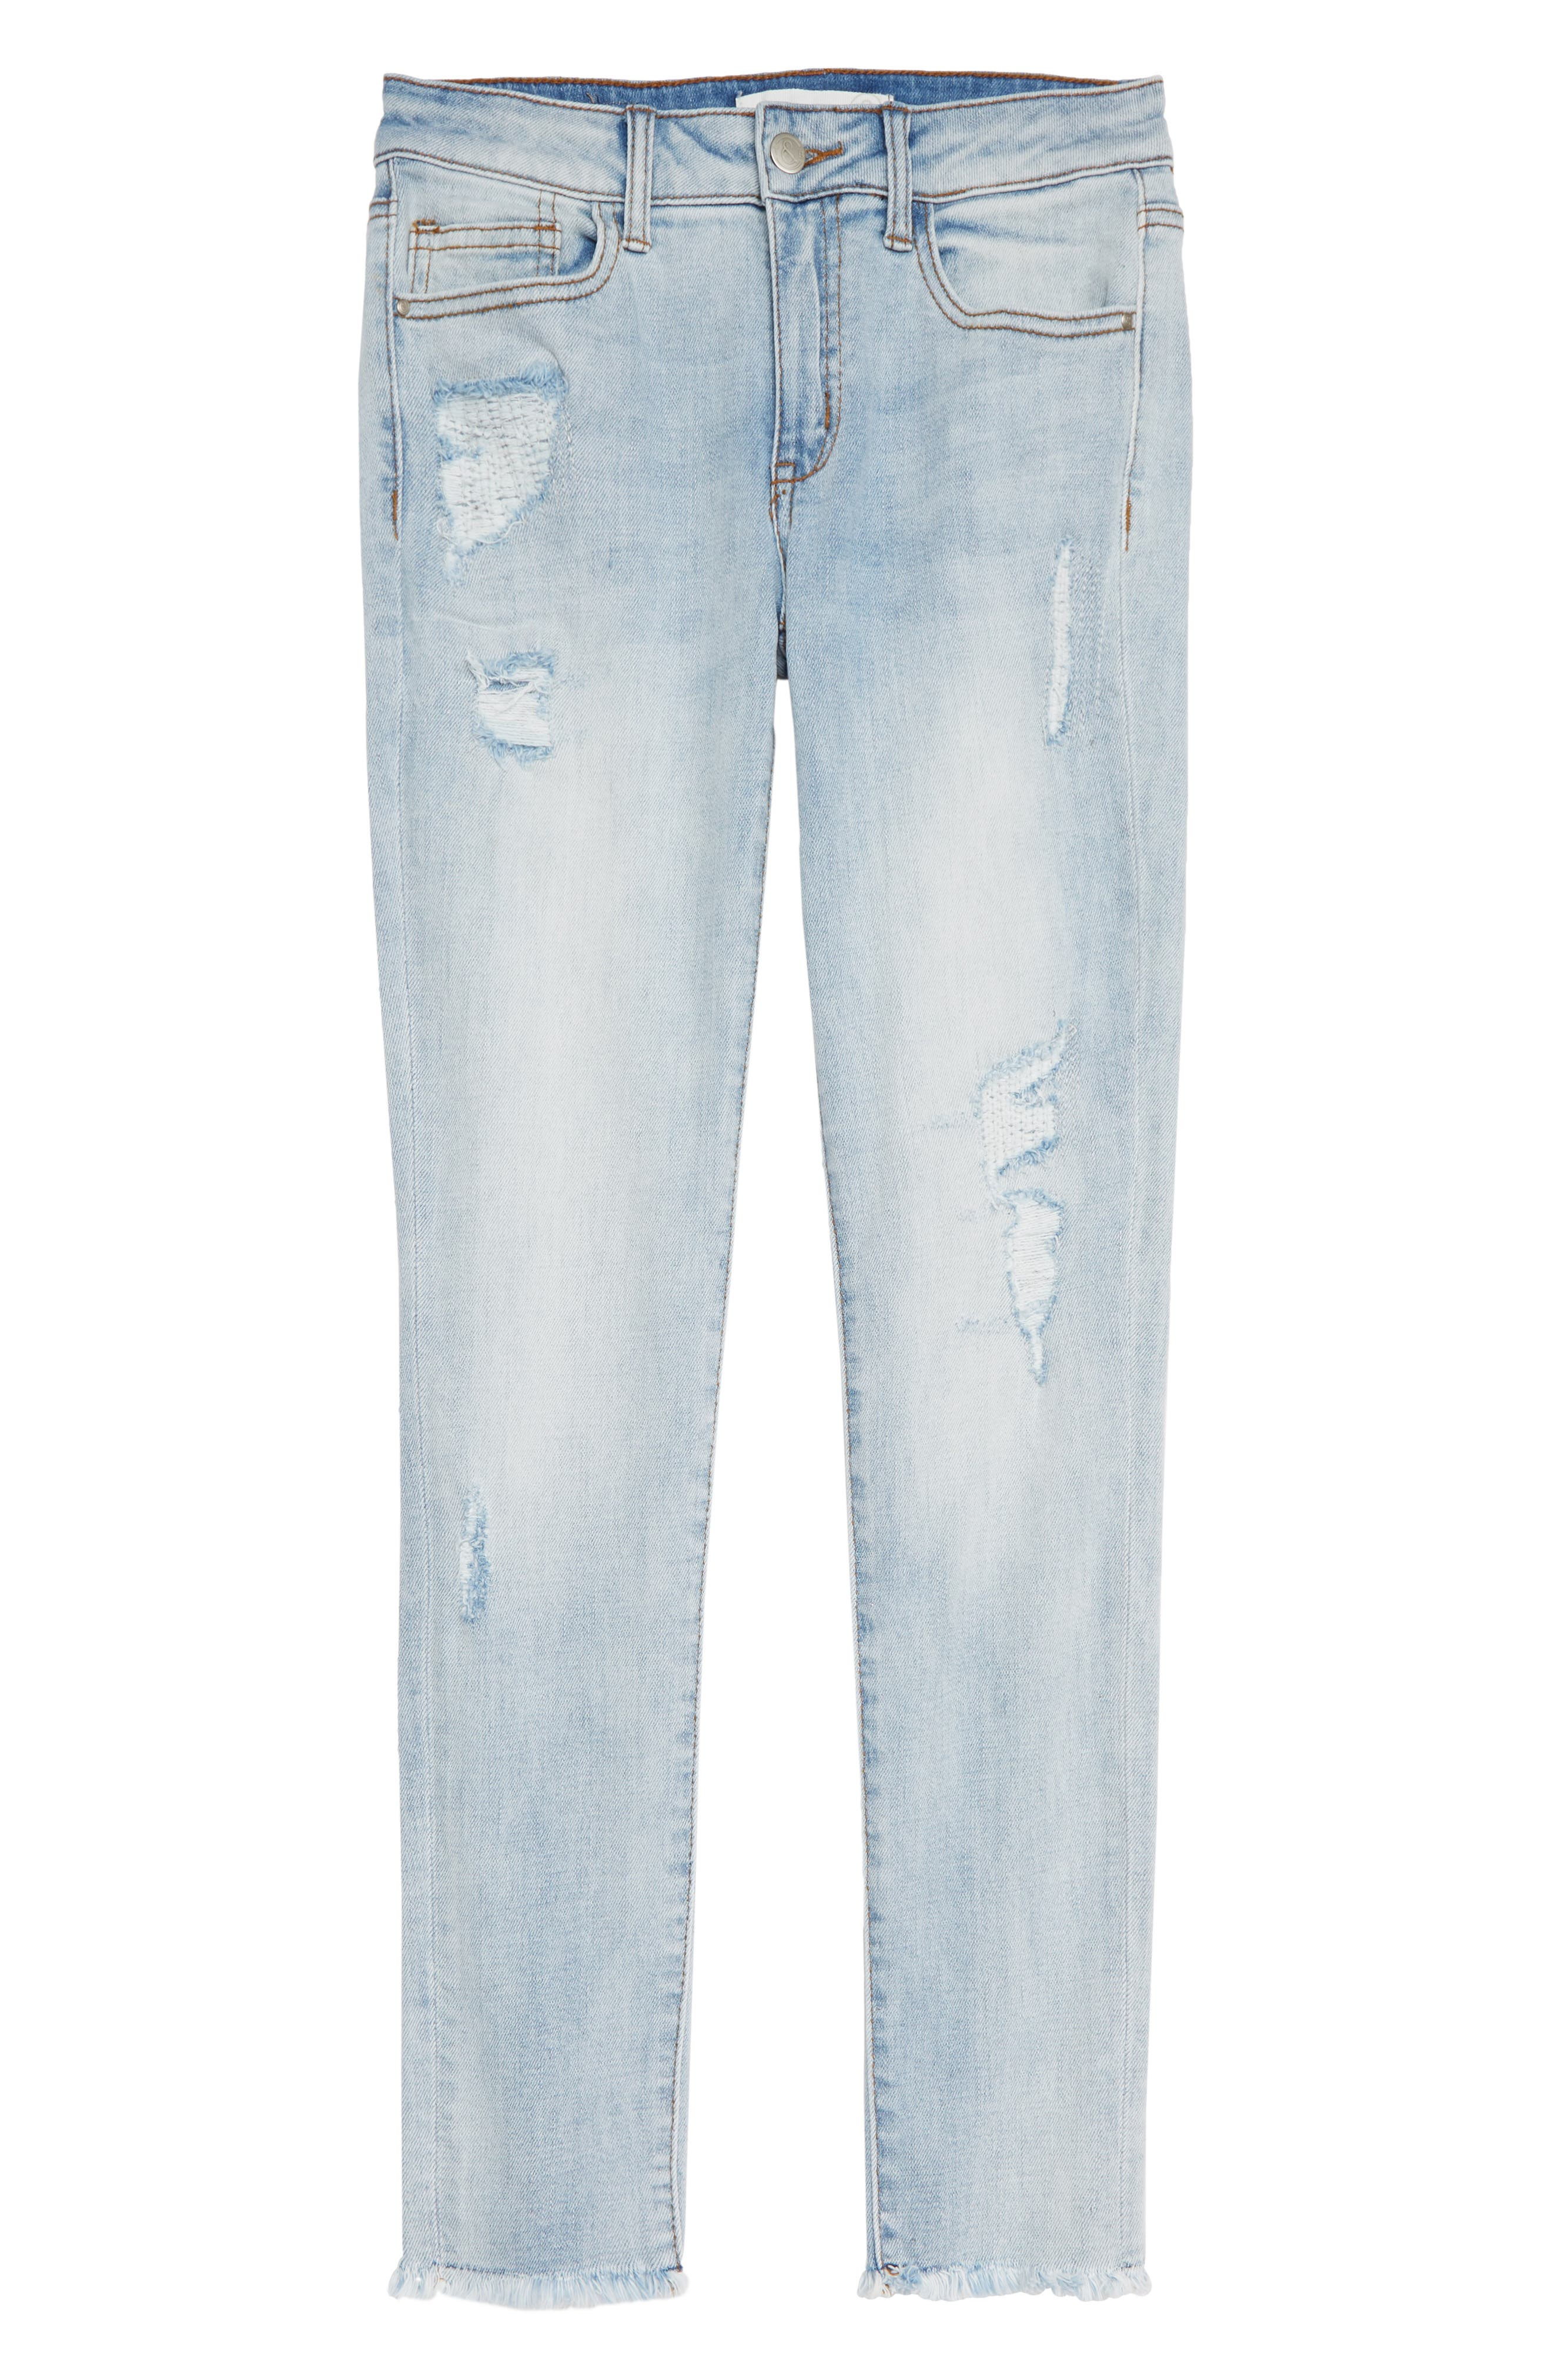 Repaired Girlfriend Jeans,                         Main,                         color, Faded Wash